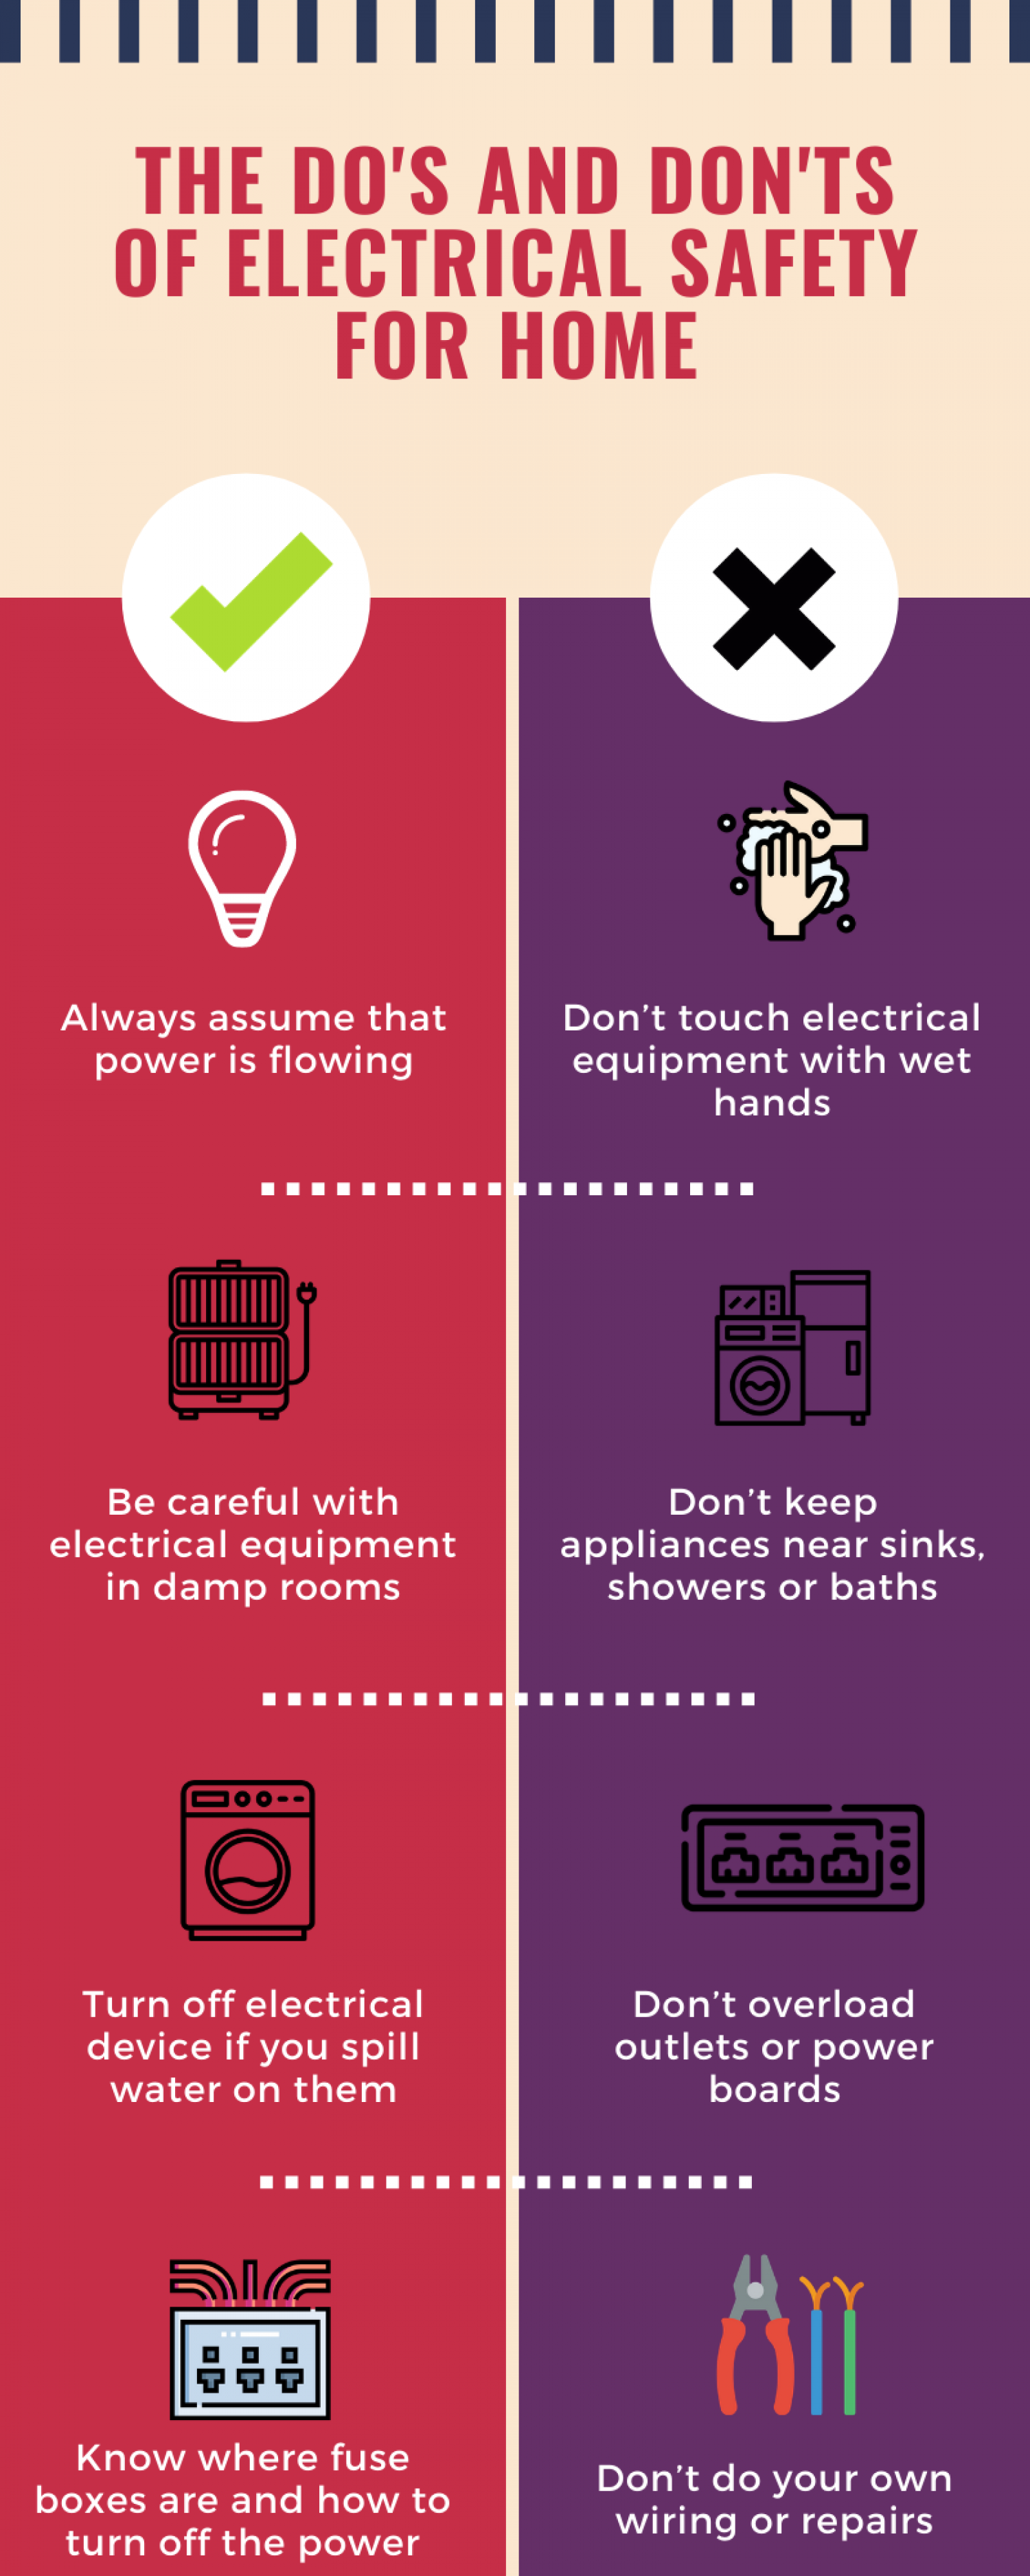 The Do's And Don'ts Of Electrical Safety For Home Infographic